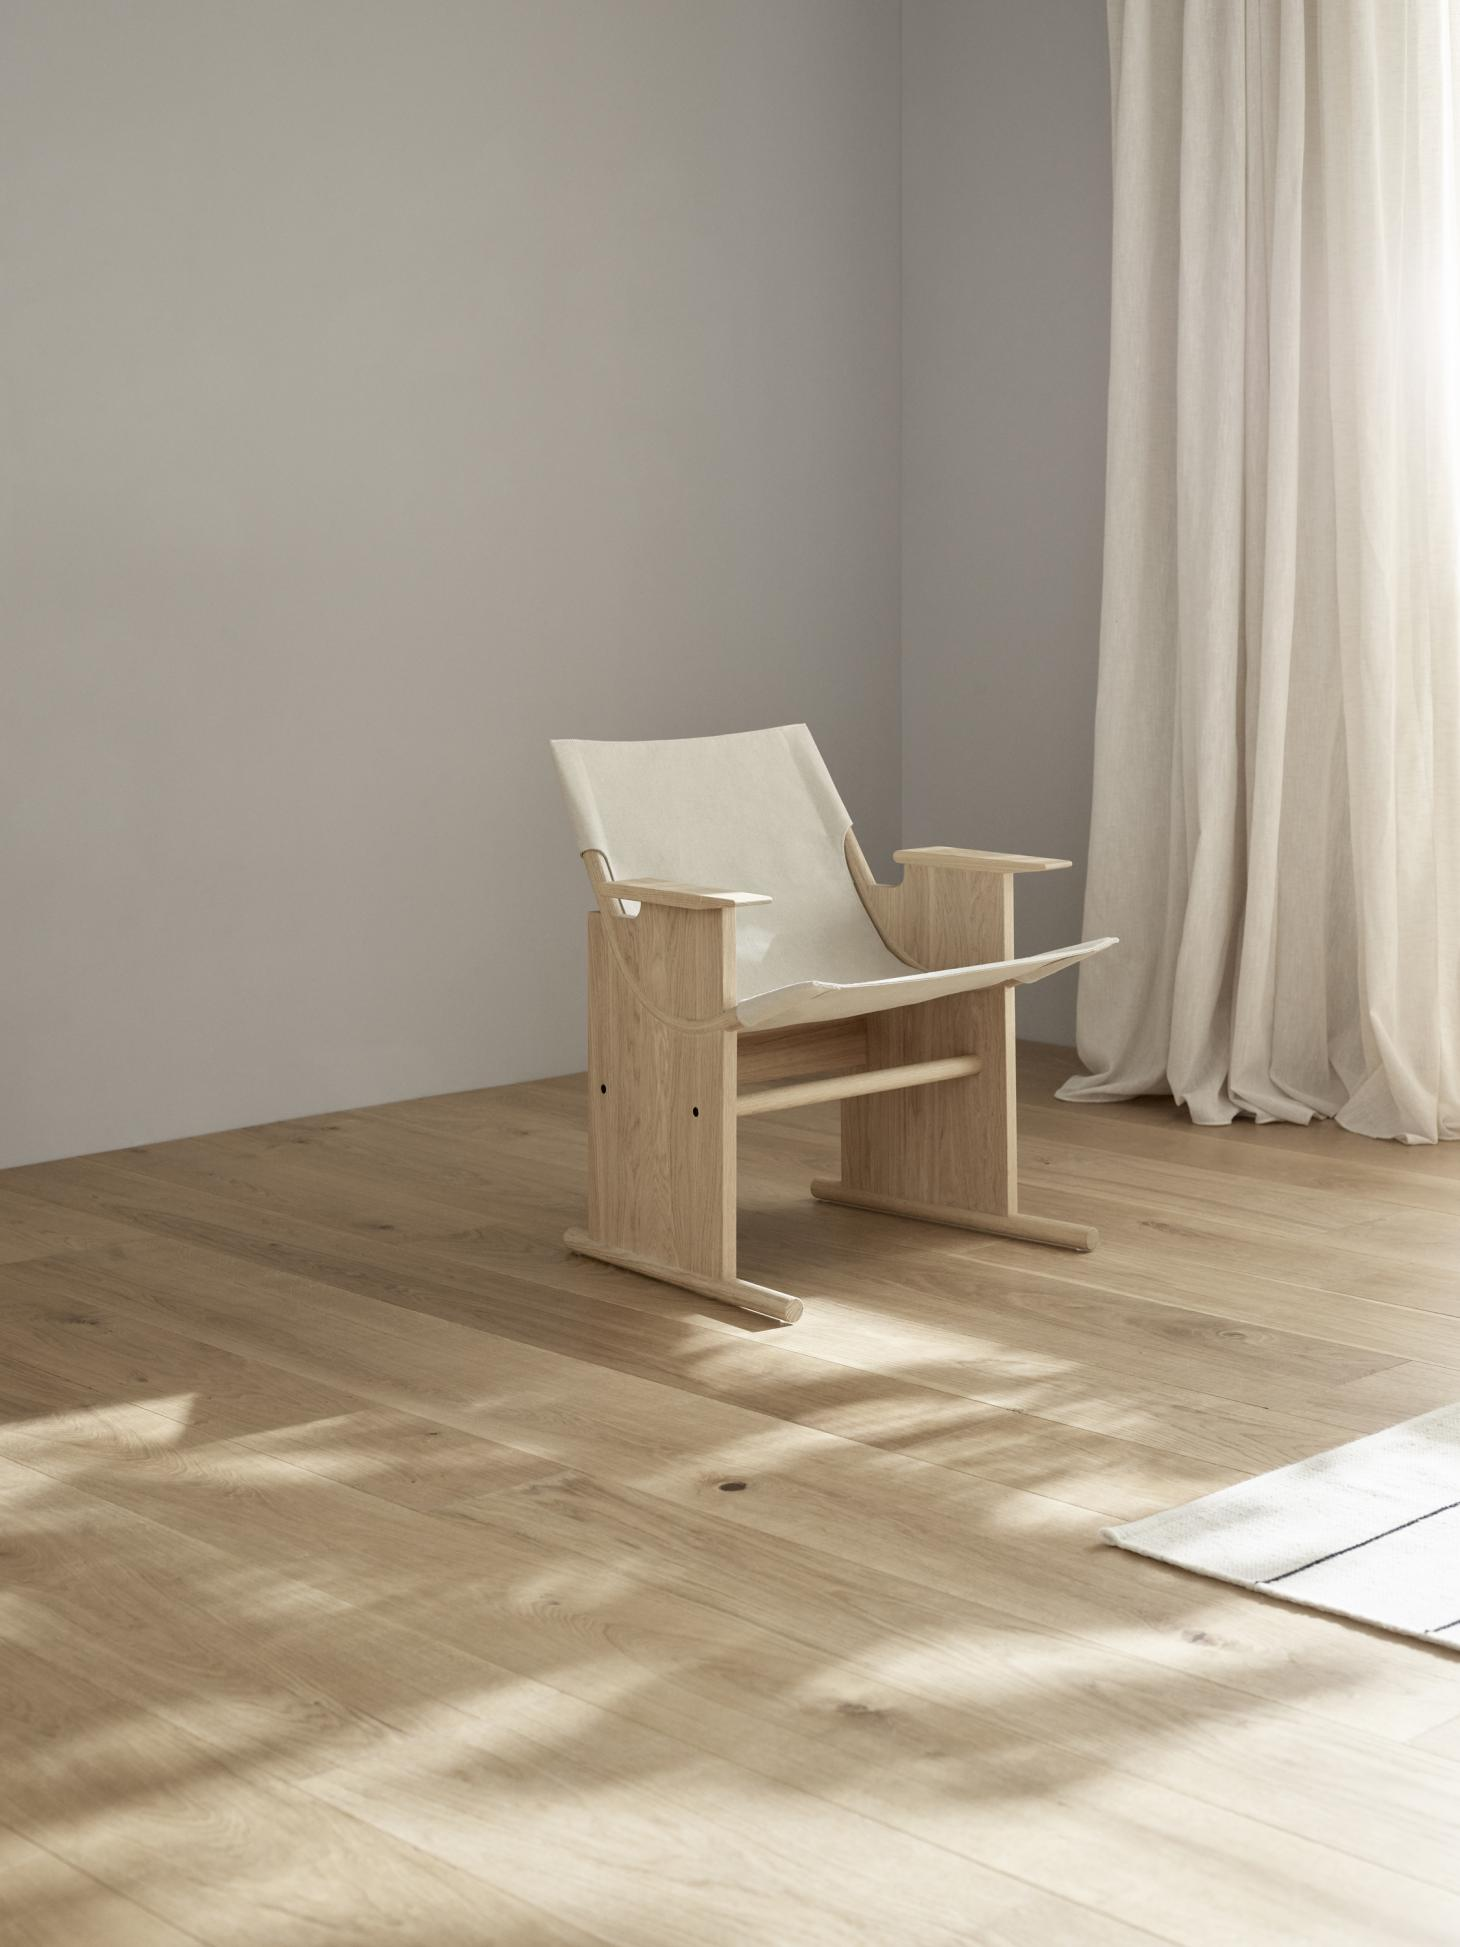 Sustainable furniture by Takt